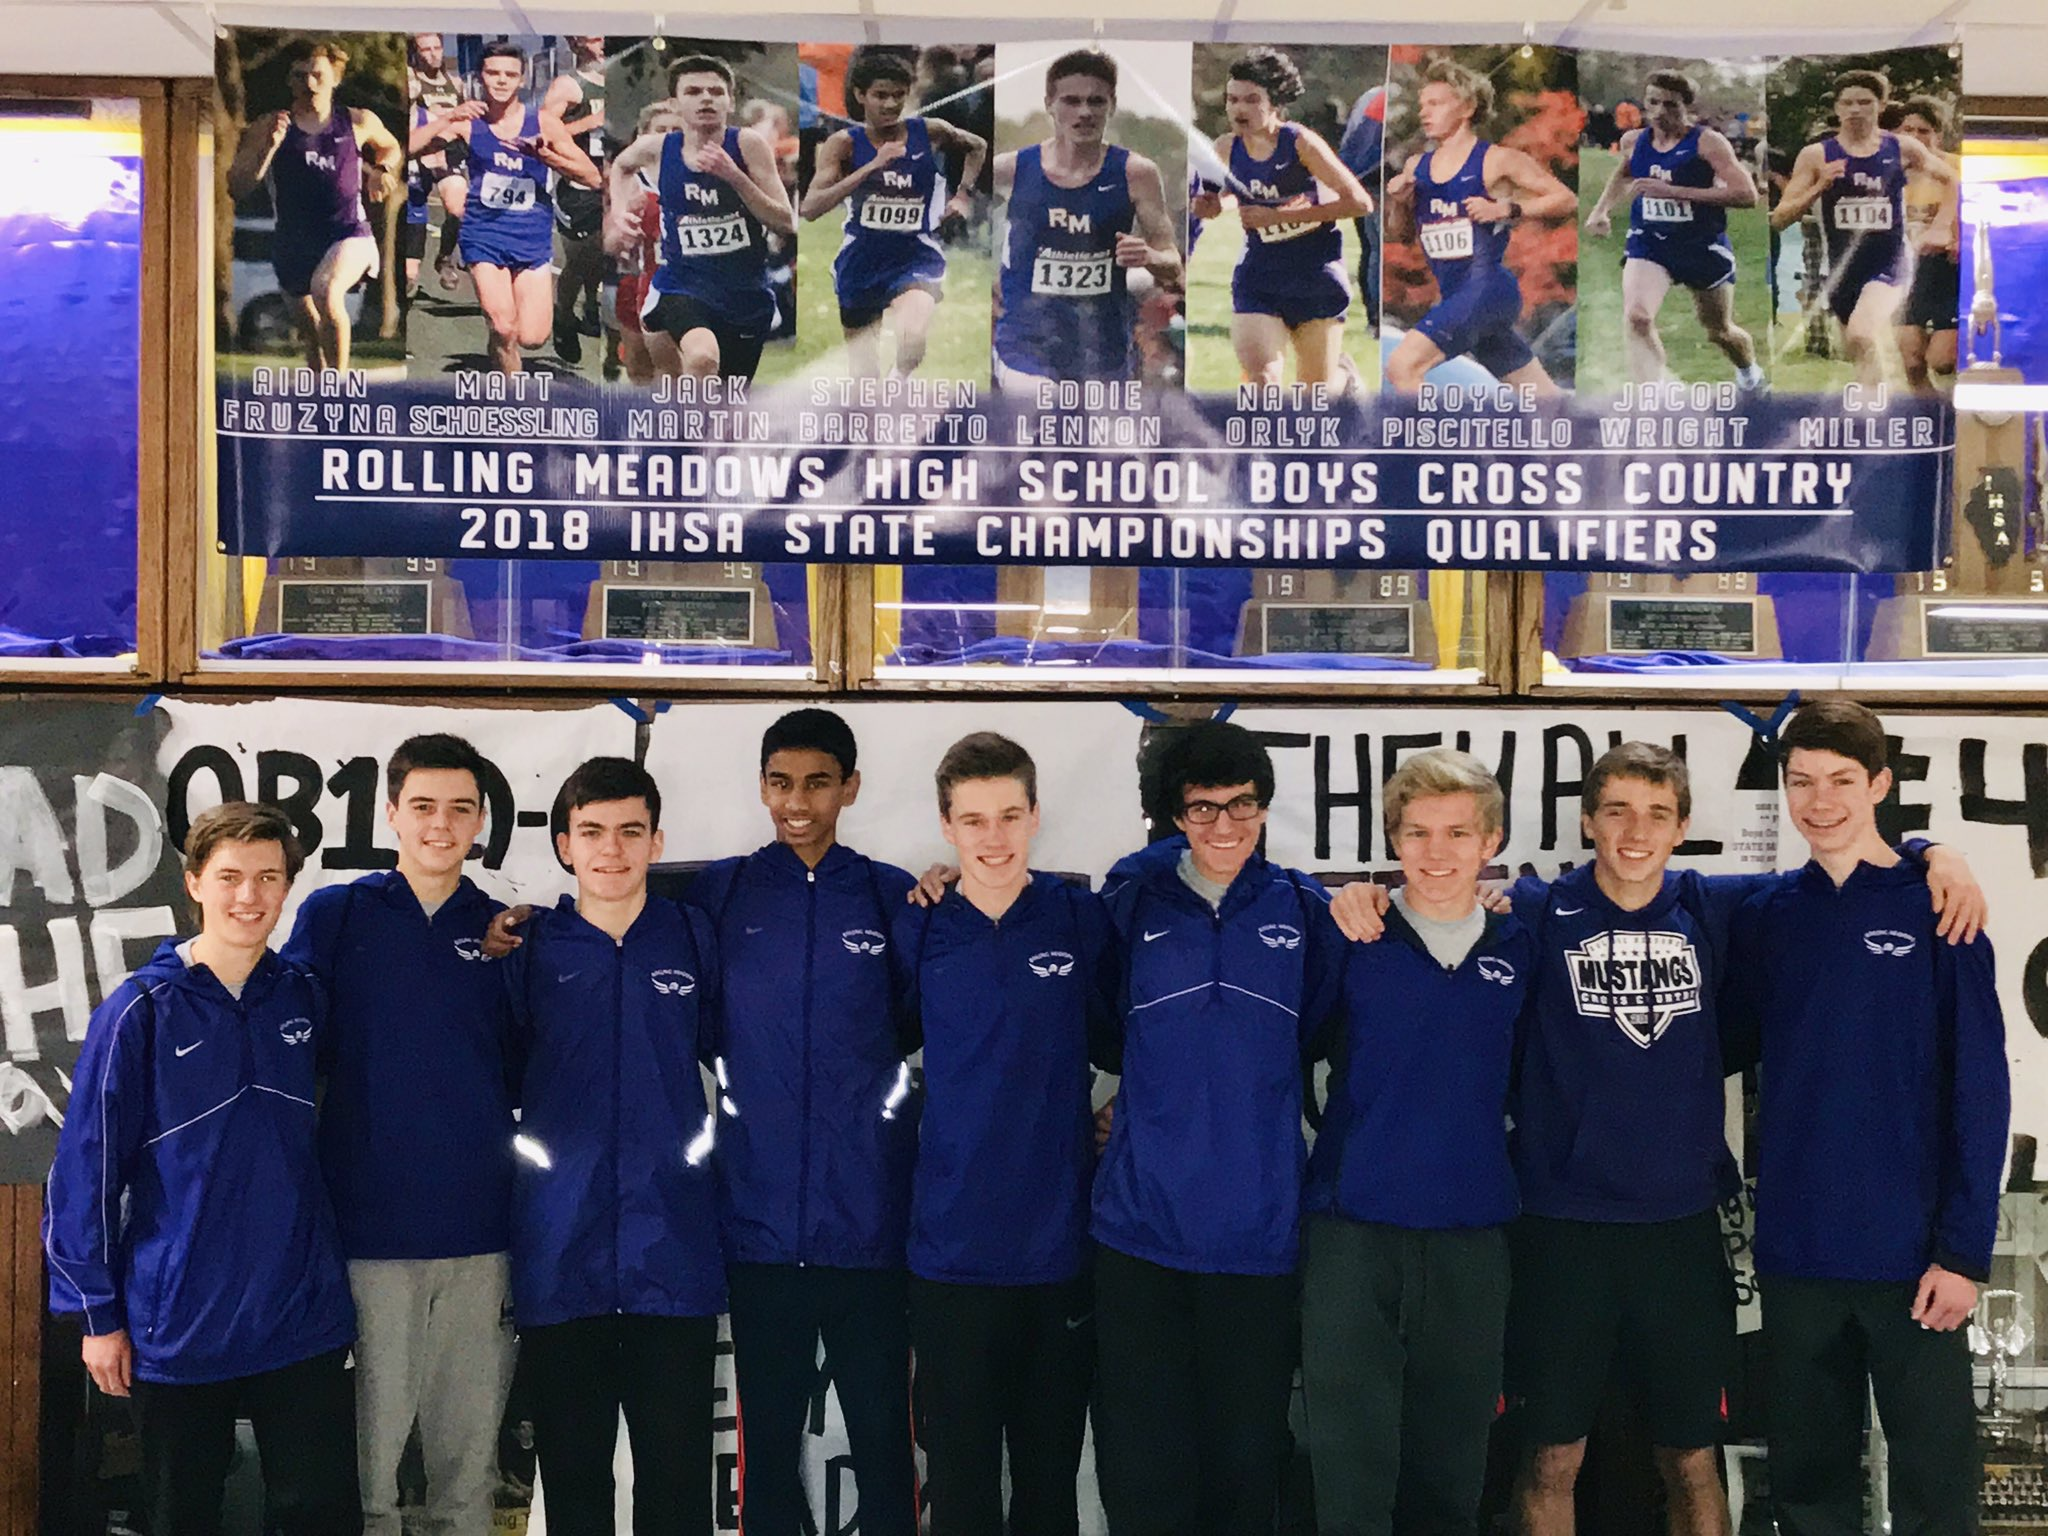 The team at a state send-off at Rolling Meadows High School.